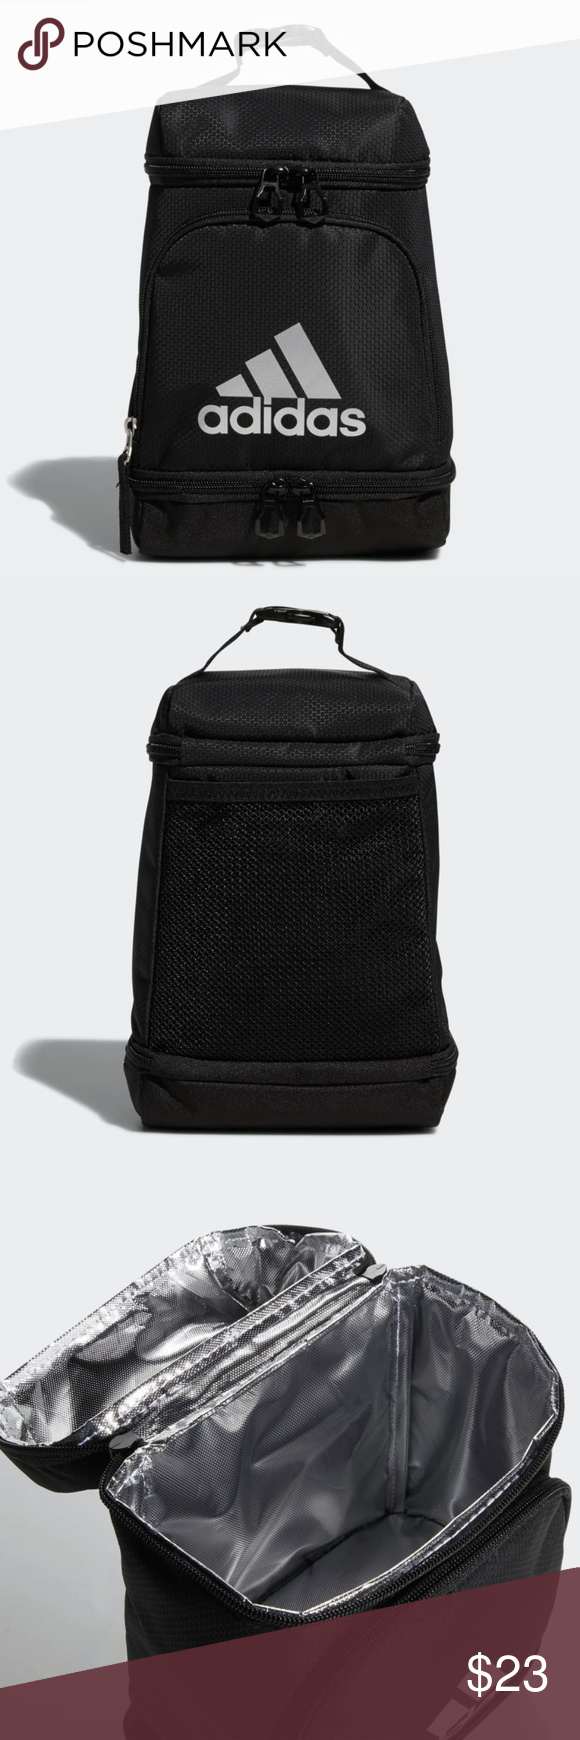 acd6a253677 ADIDAS Excel Lined Lunch Bag (Black) Brand New w/Tags - Adidas Lined ...